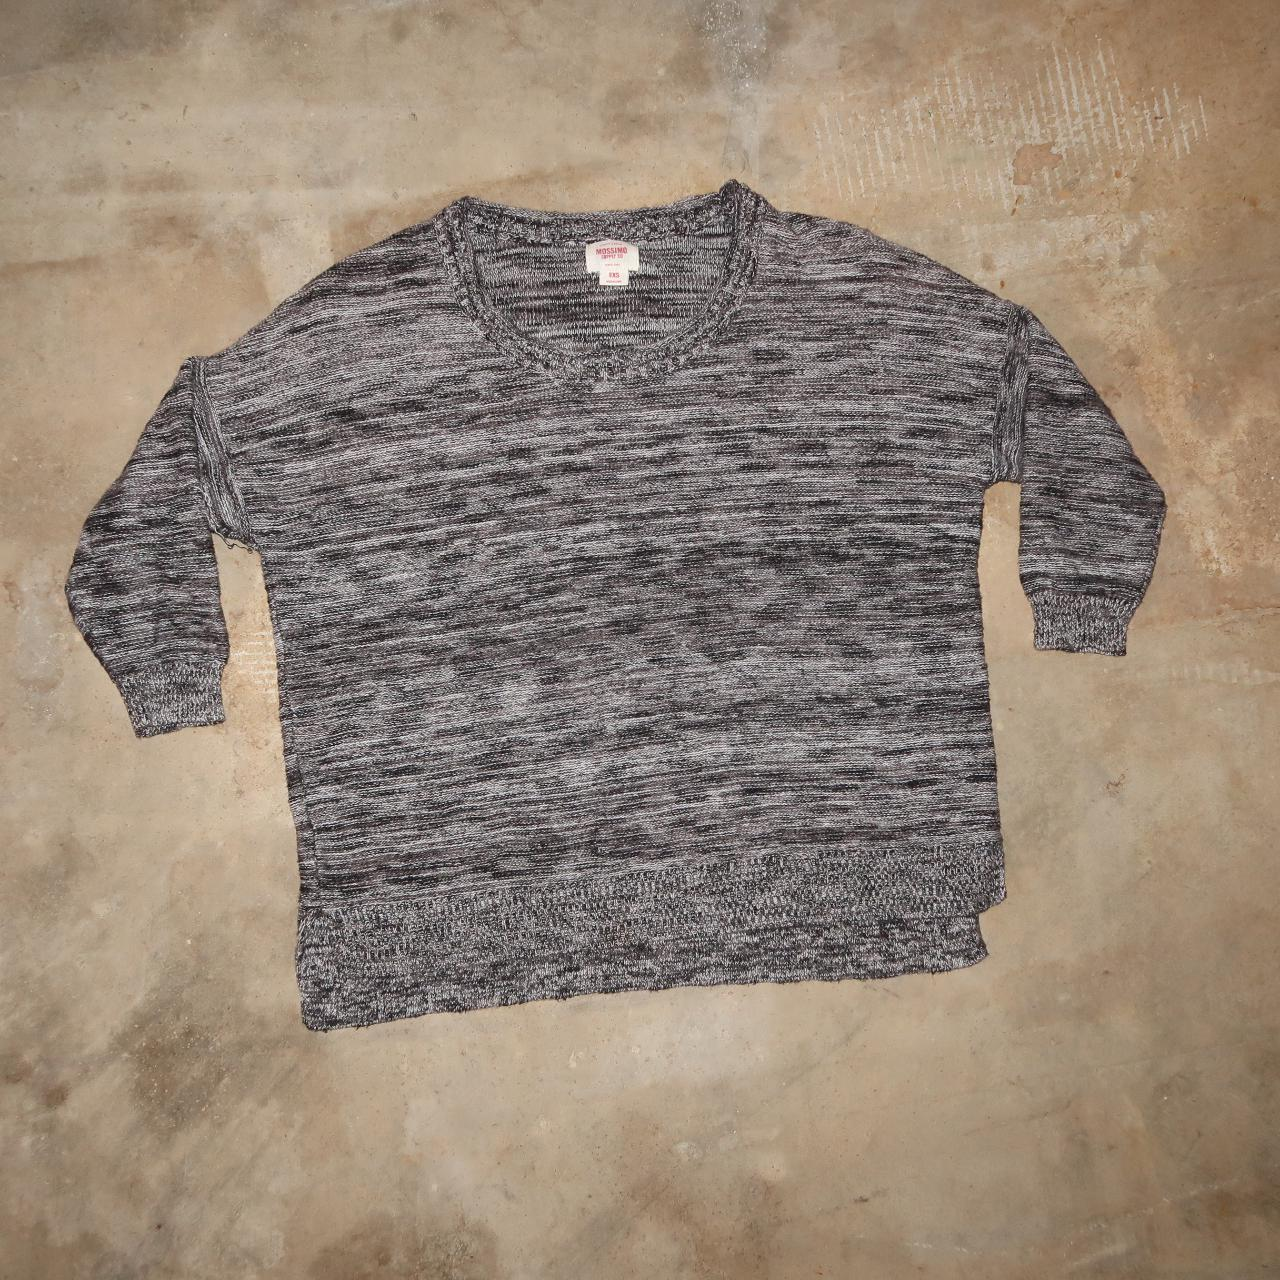 Product Image 1 - Mossimo Black Gray Knit Womens